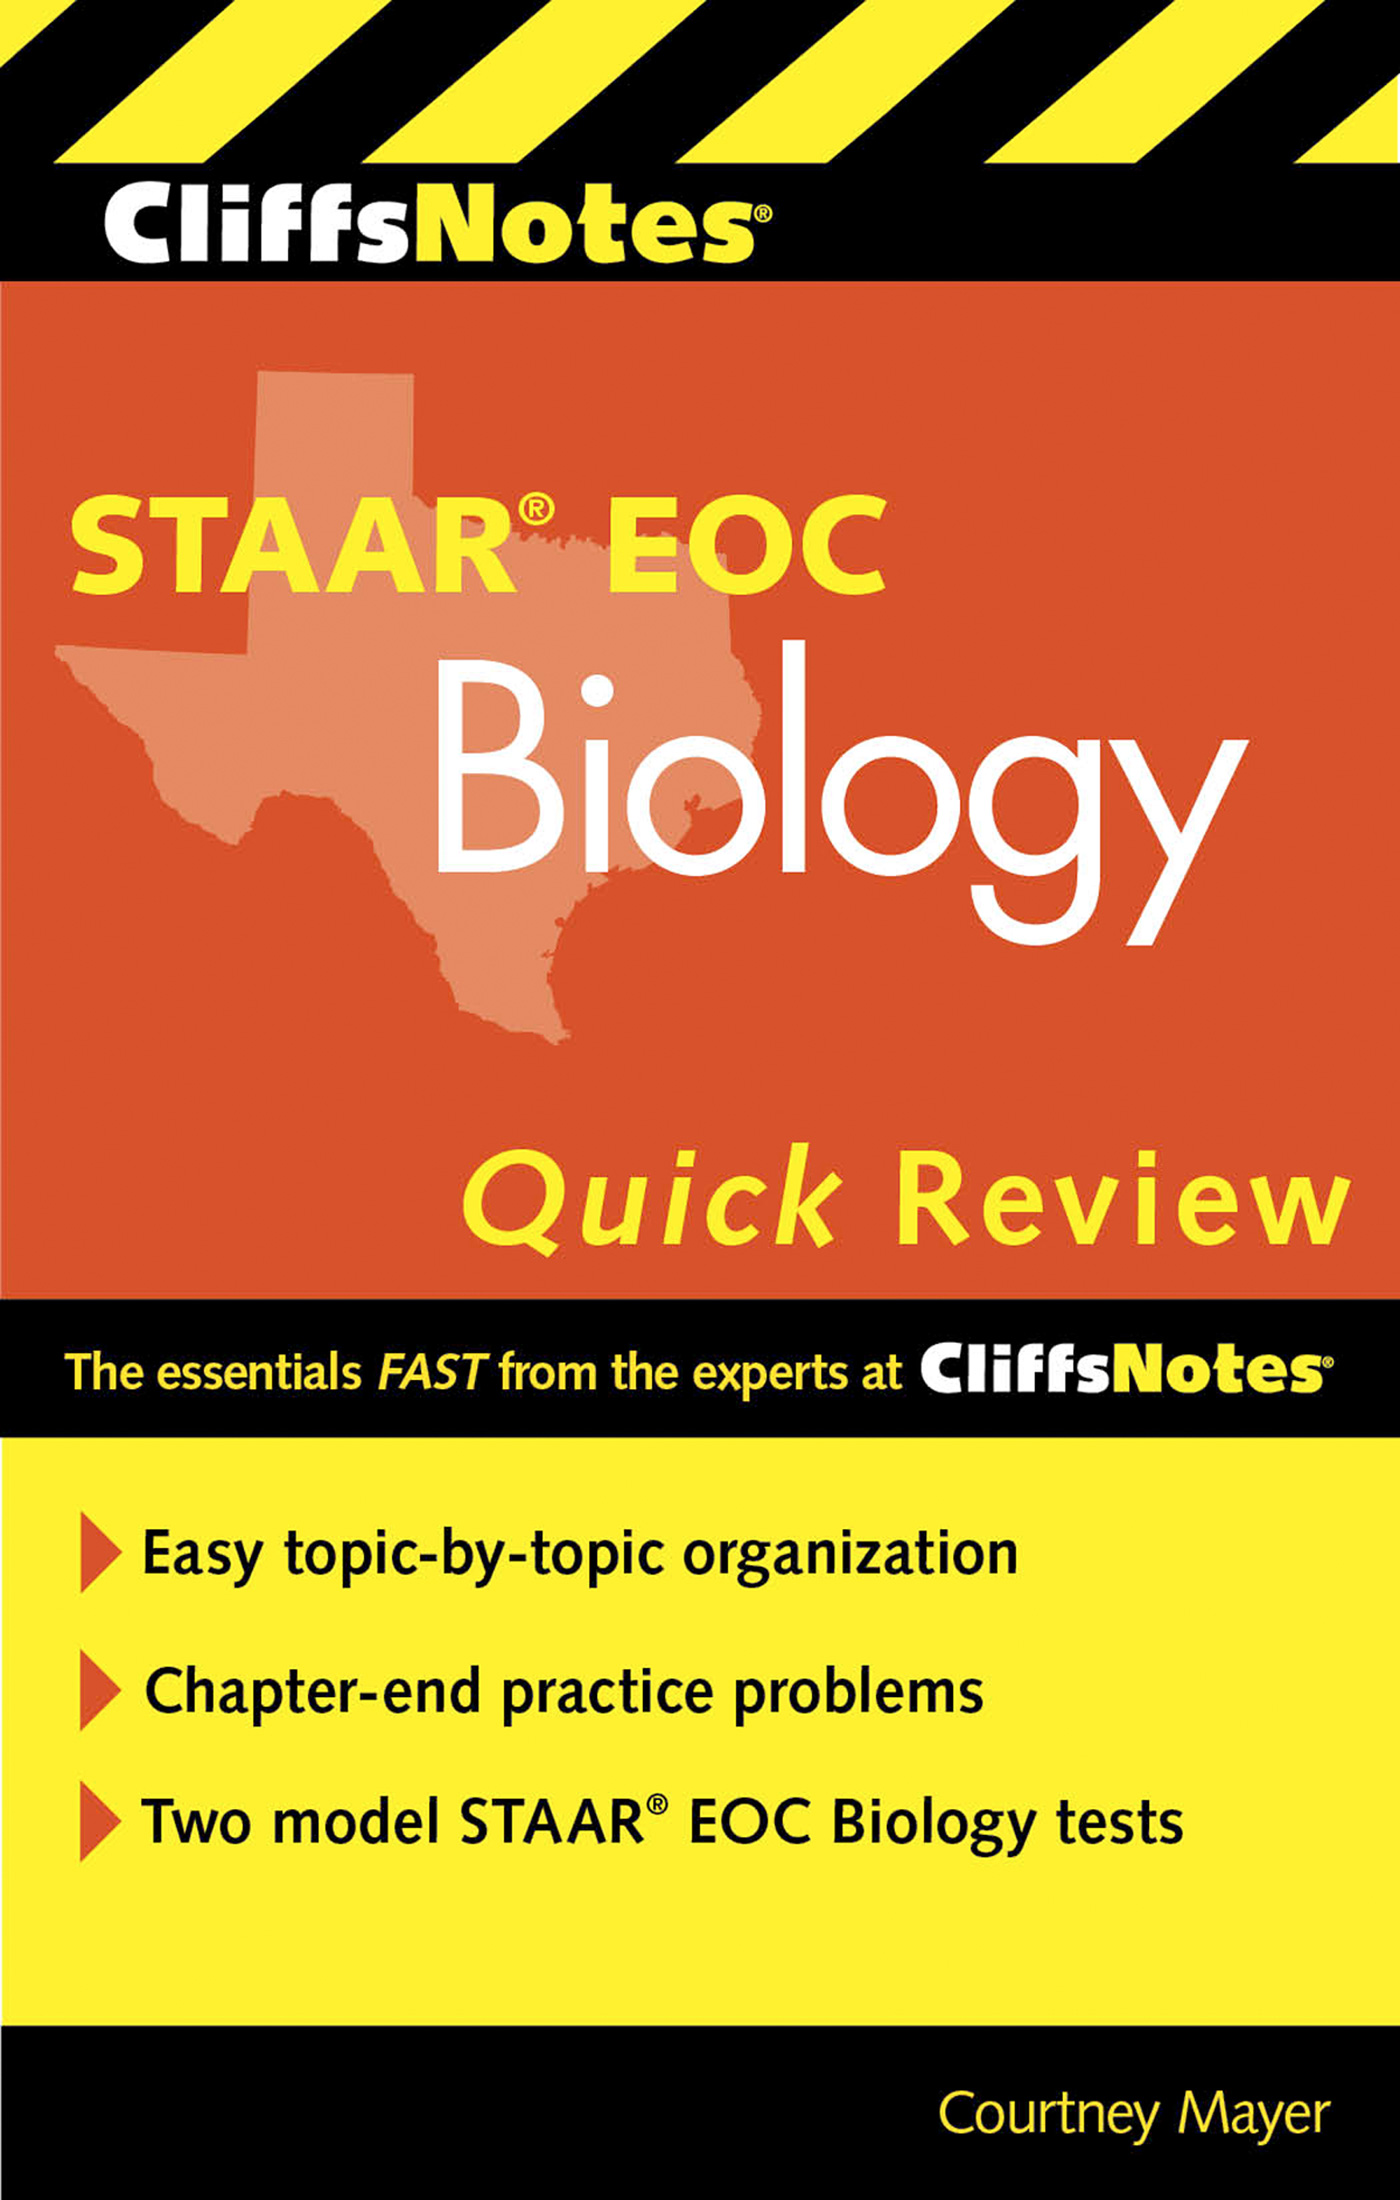 CliffsNotes STAAR EOC Biology Quick Review-9780544370128